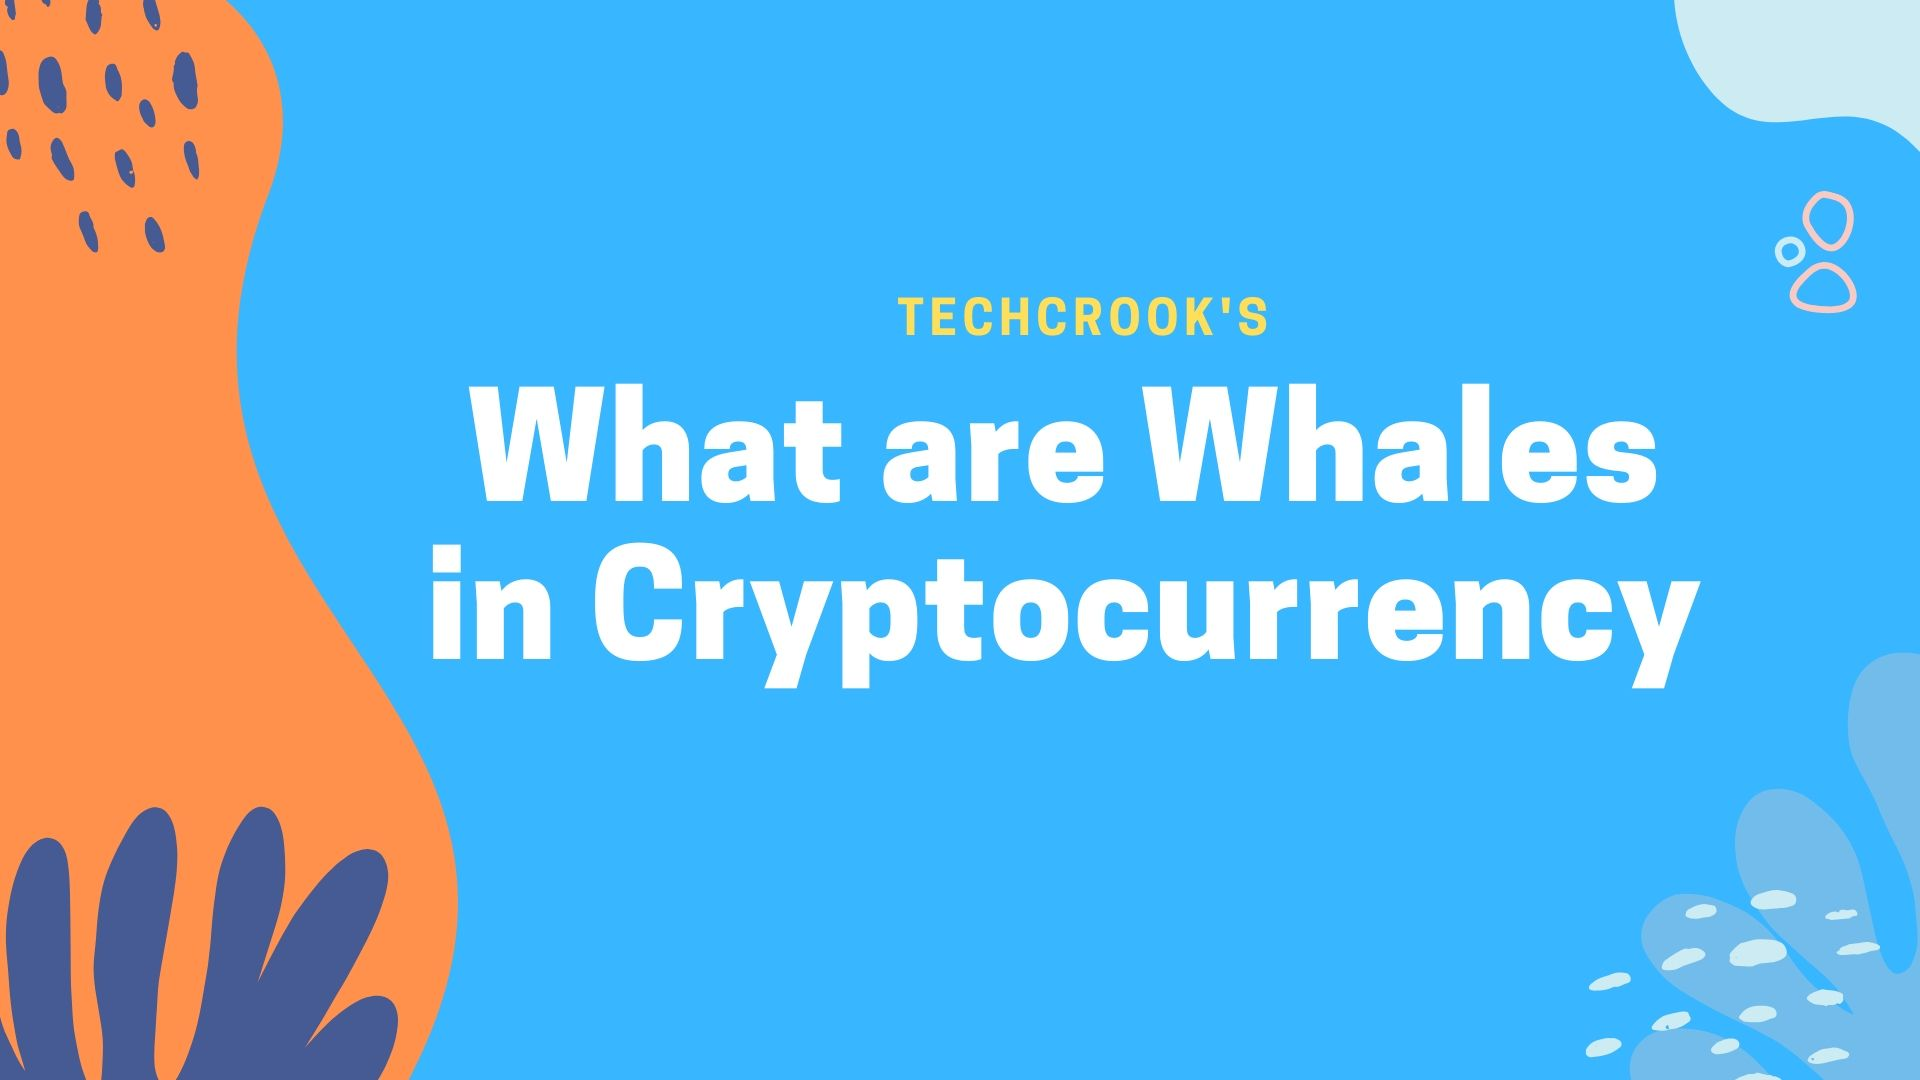 What do Whales indicate in Cryptocurrency